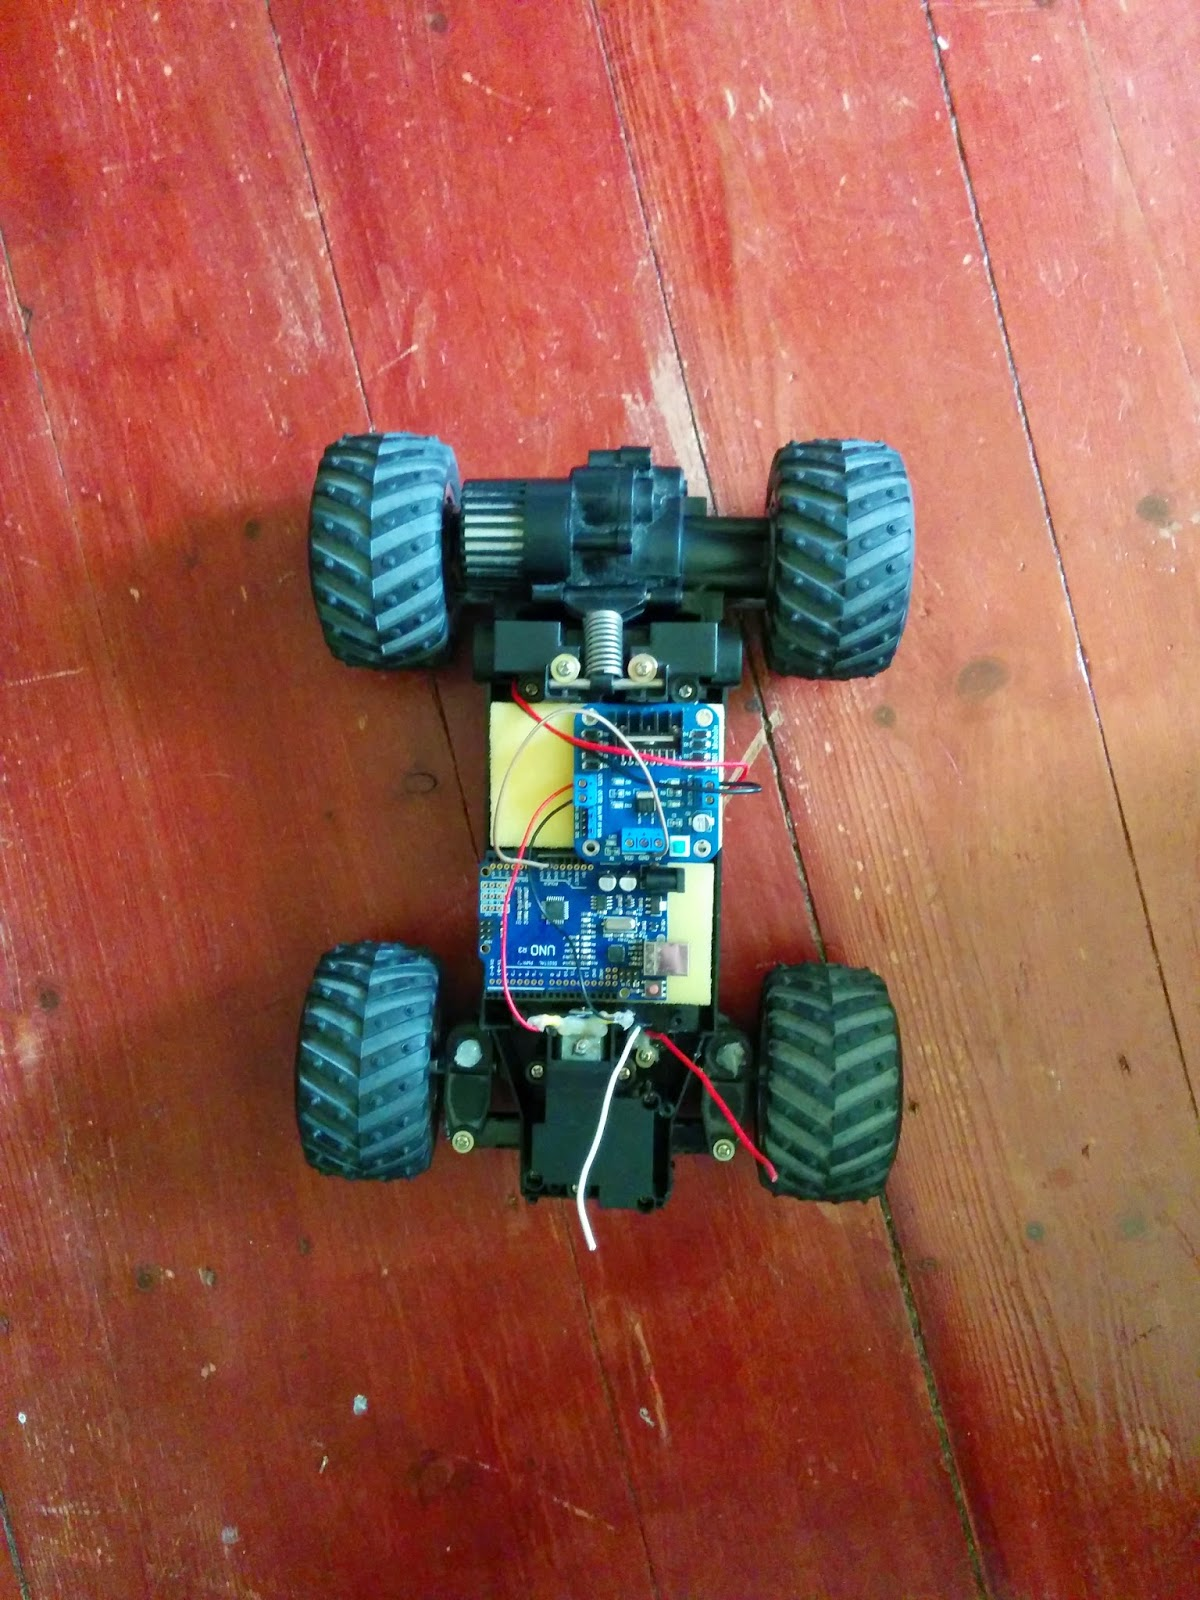 Arduino explorer robot made by recycling a rc car s t